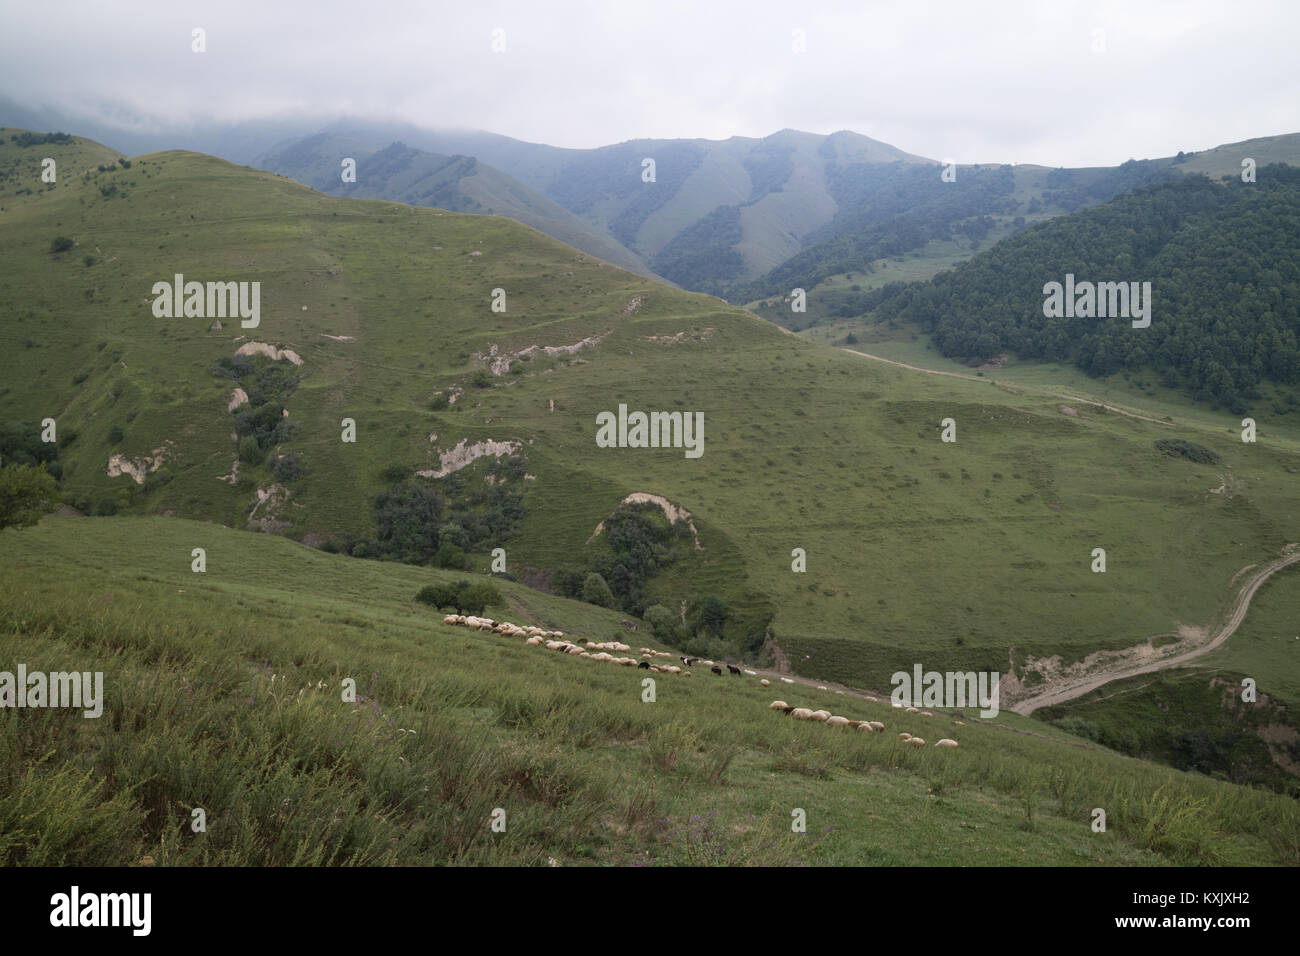 Slopes of wild remote Caucasian mountains in Ingushetia/Chechnya, Russia - Stock Image